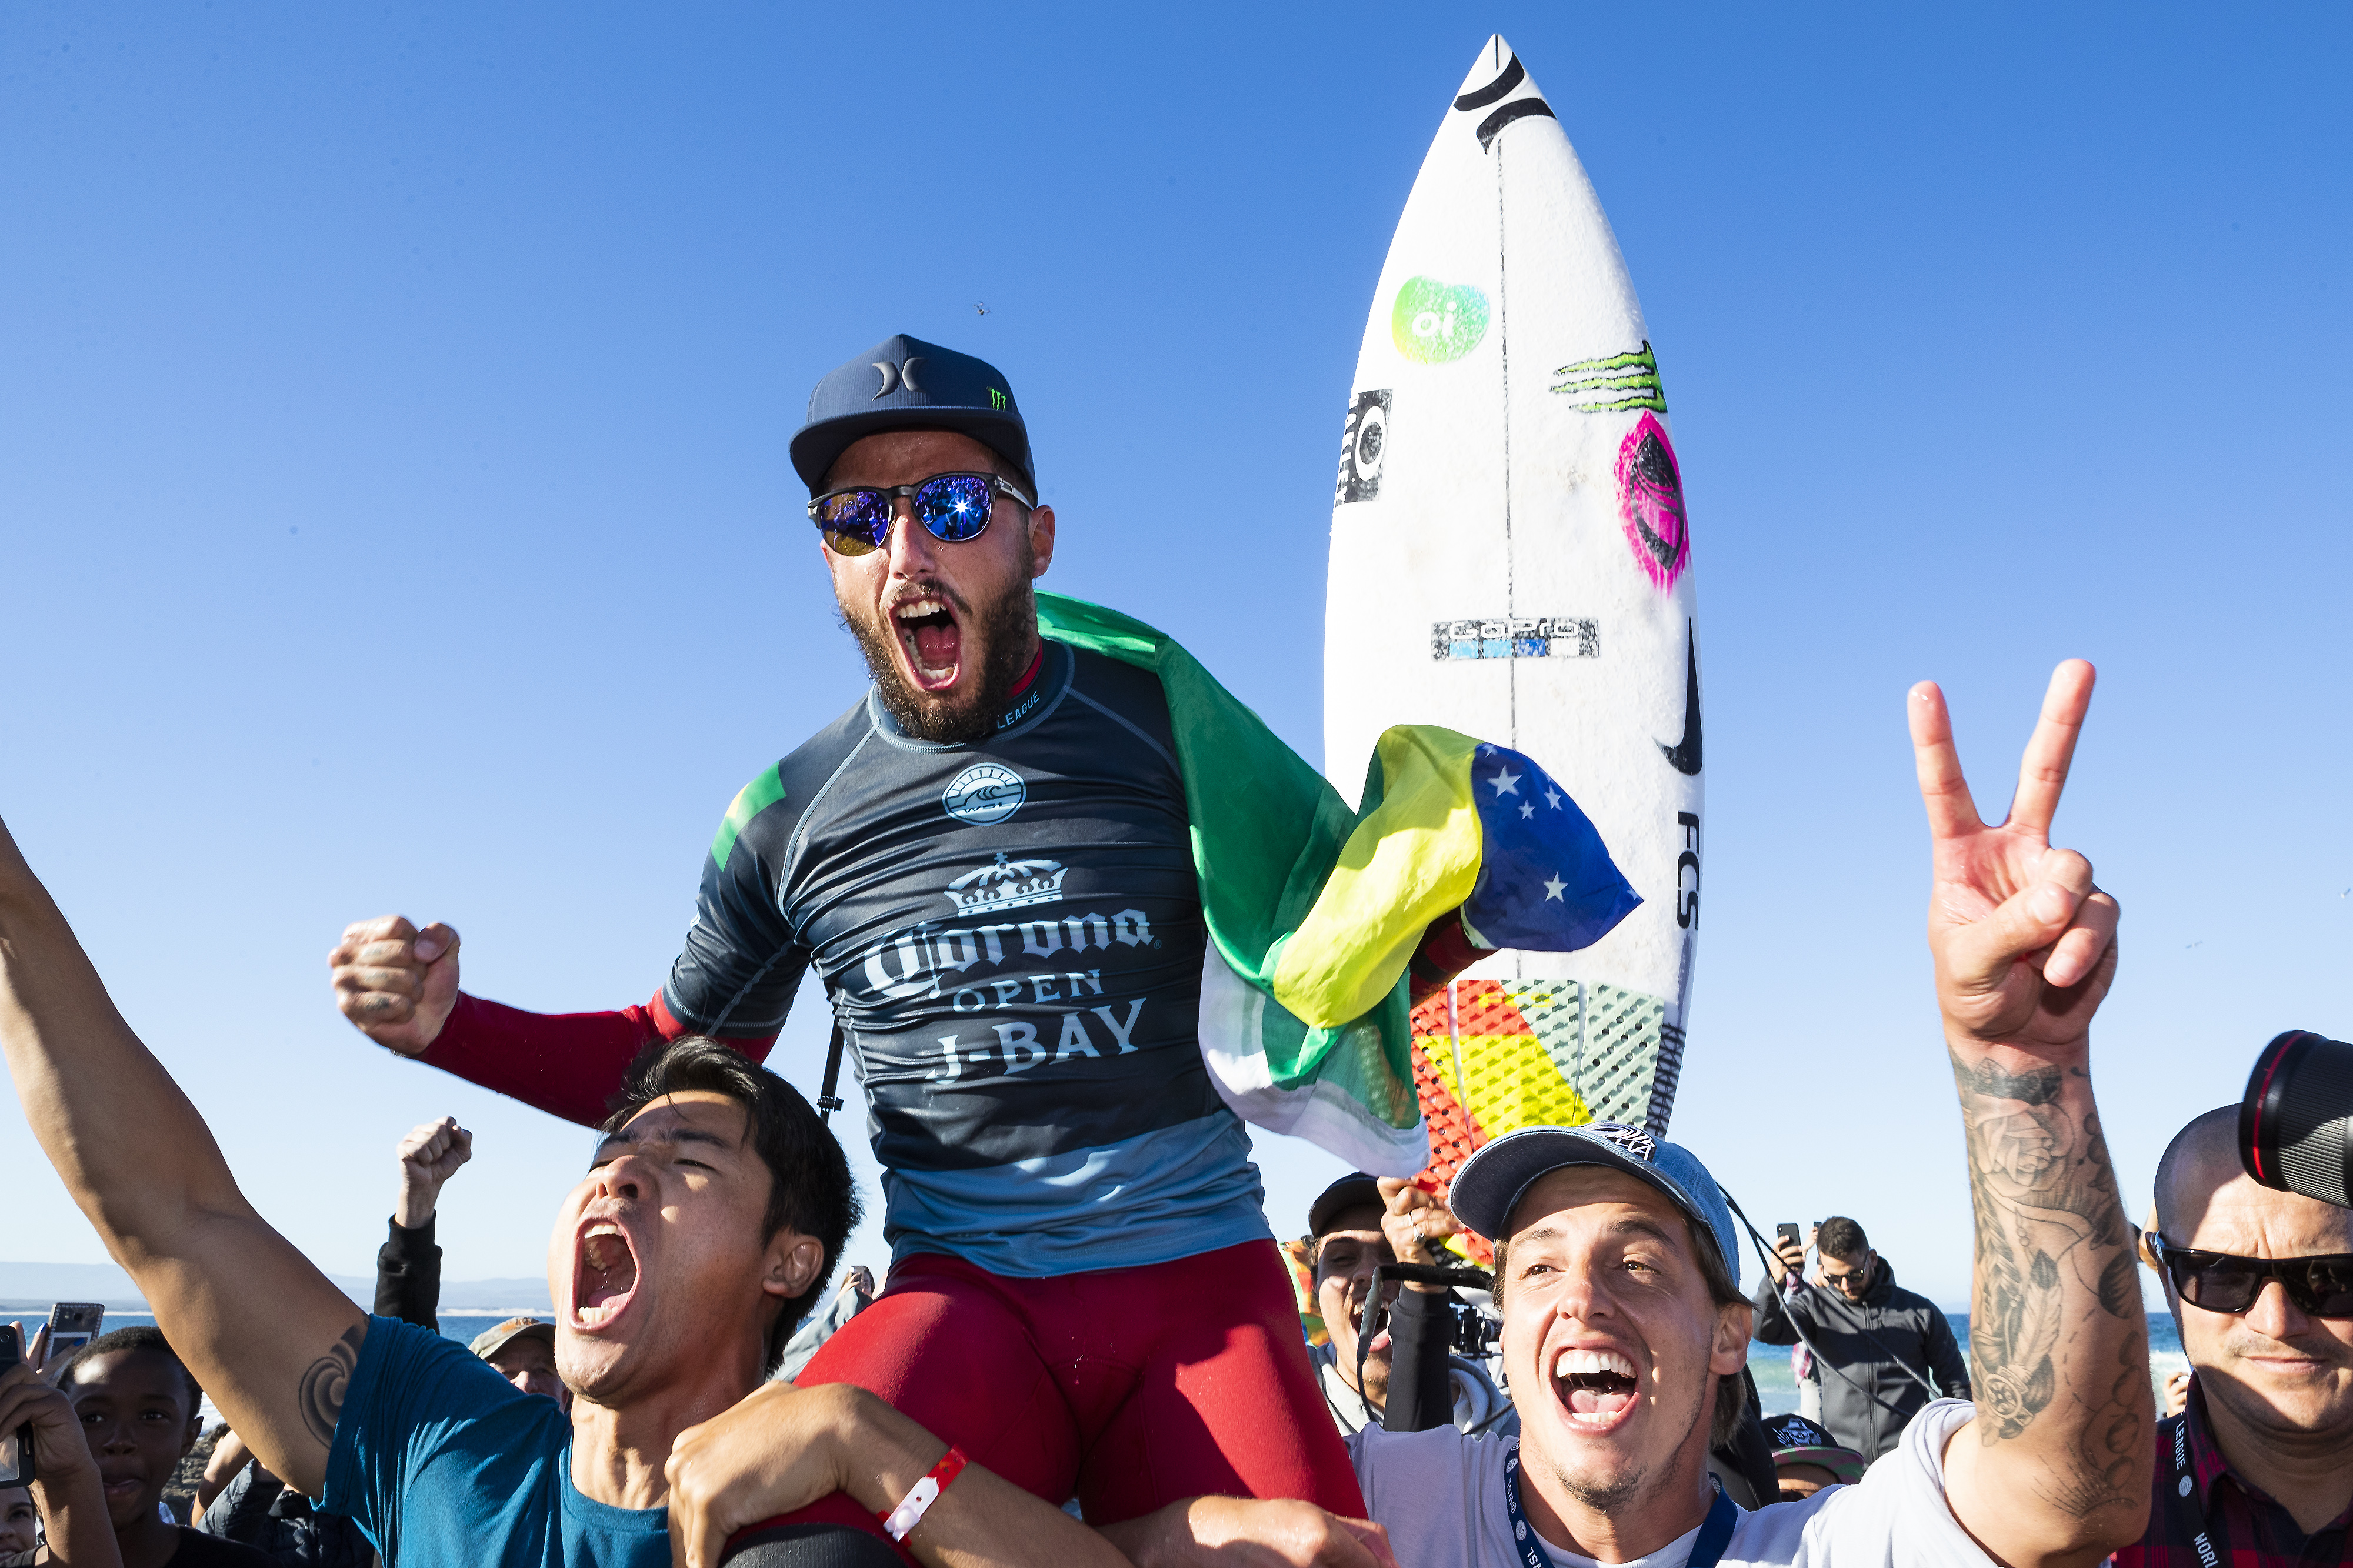 Toledo Takes J-Bay, Again Filipe Toledo asserts himself at the world's best right-hand pointbreak, comes away with back-to-back titles   Dana Point Times